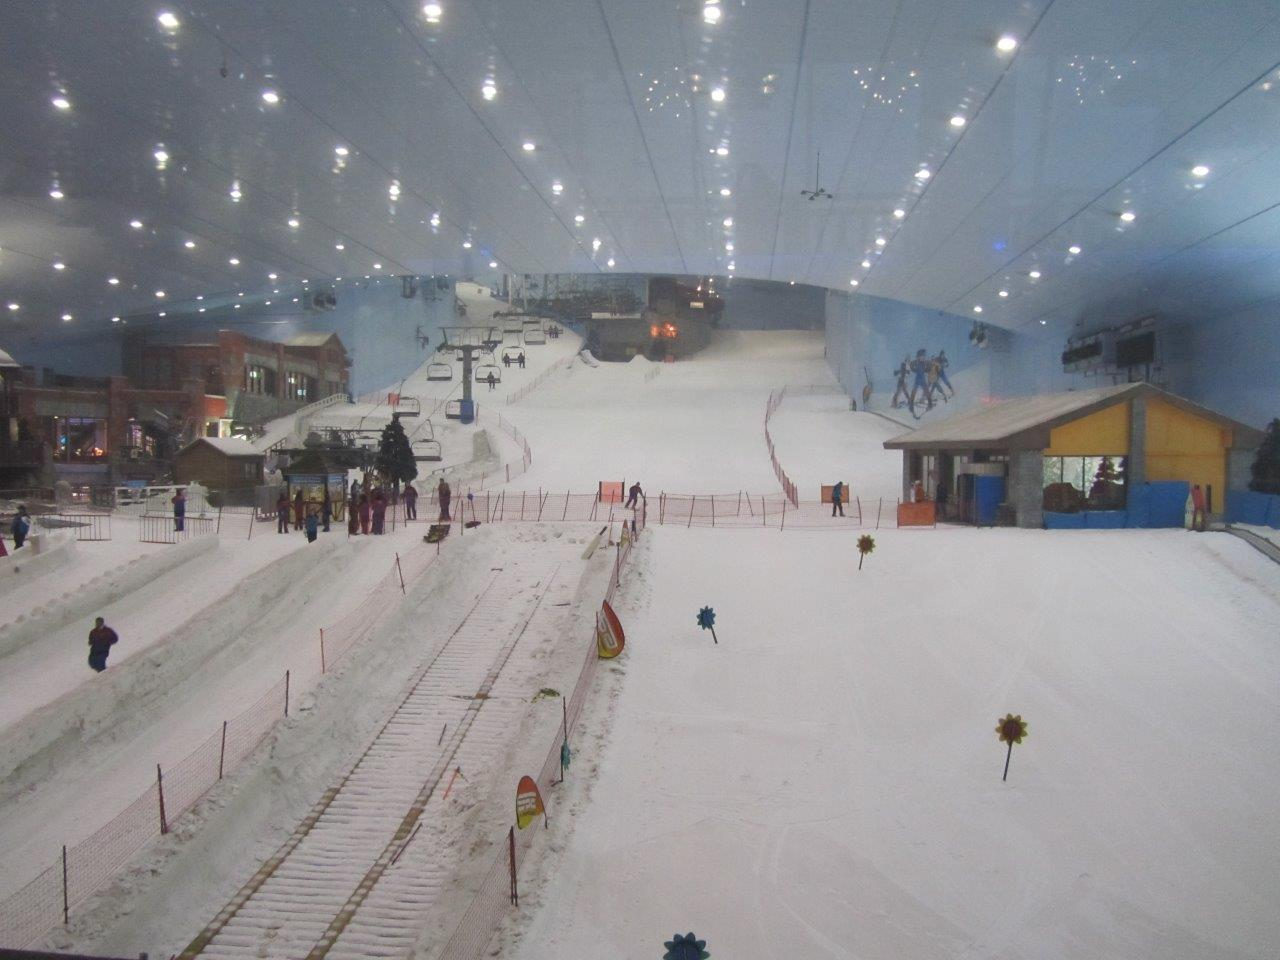 Dubai Mall Indoor Ski Slope 9